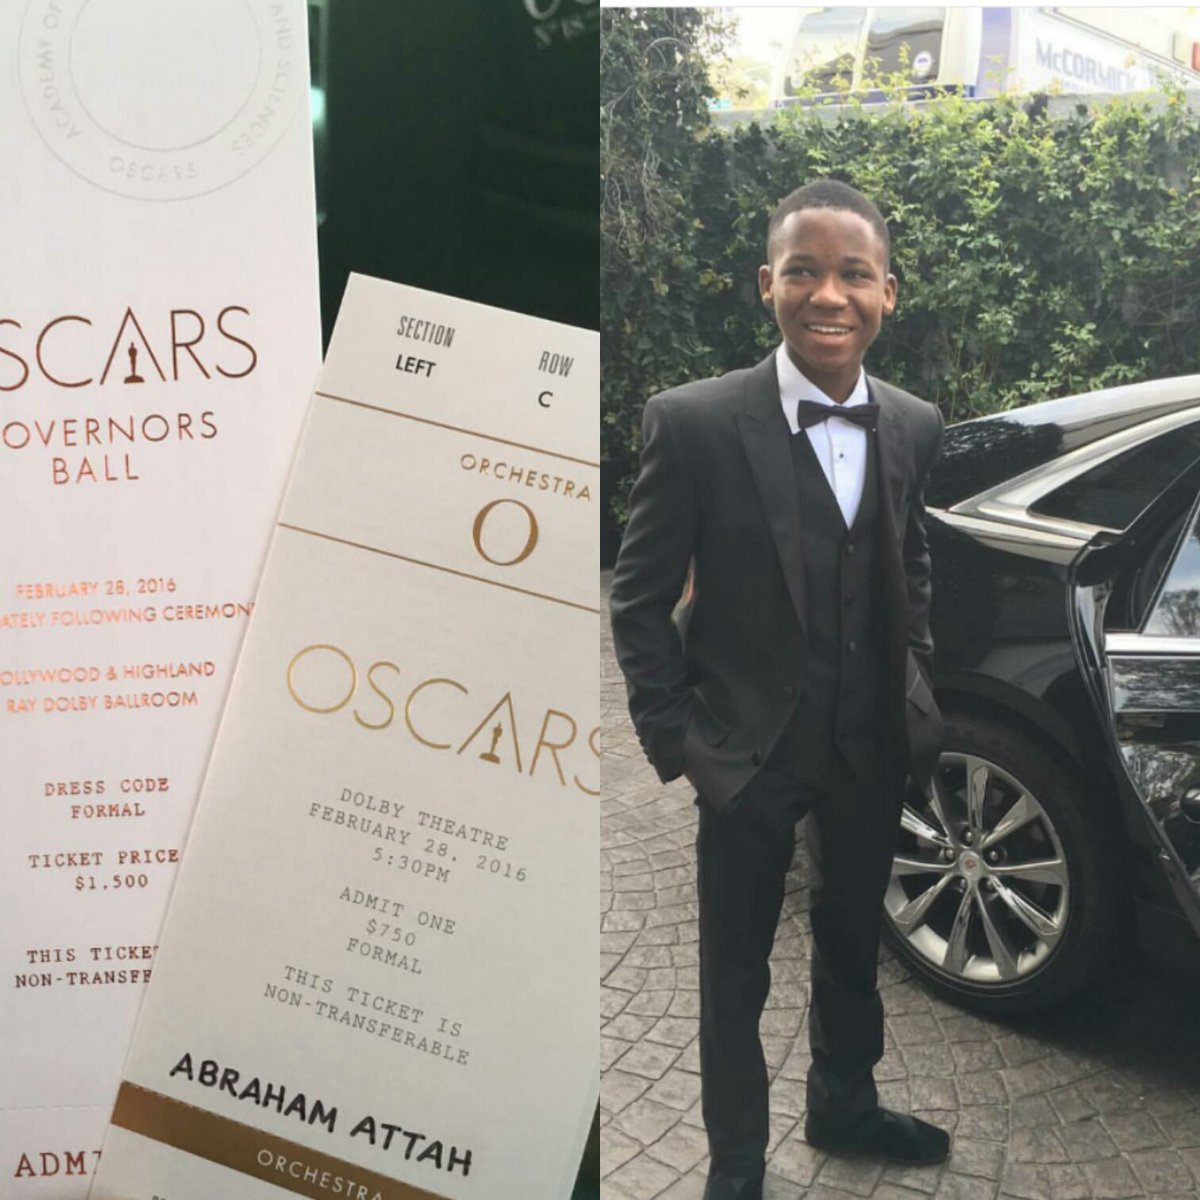 Ghana's Abraham Attah  to present an award at #Oscars tonight #Oscars2016 #OscarsSoWhite https://t.co/6RVCQqWbky